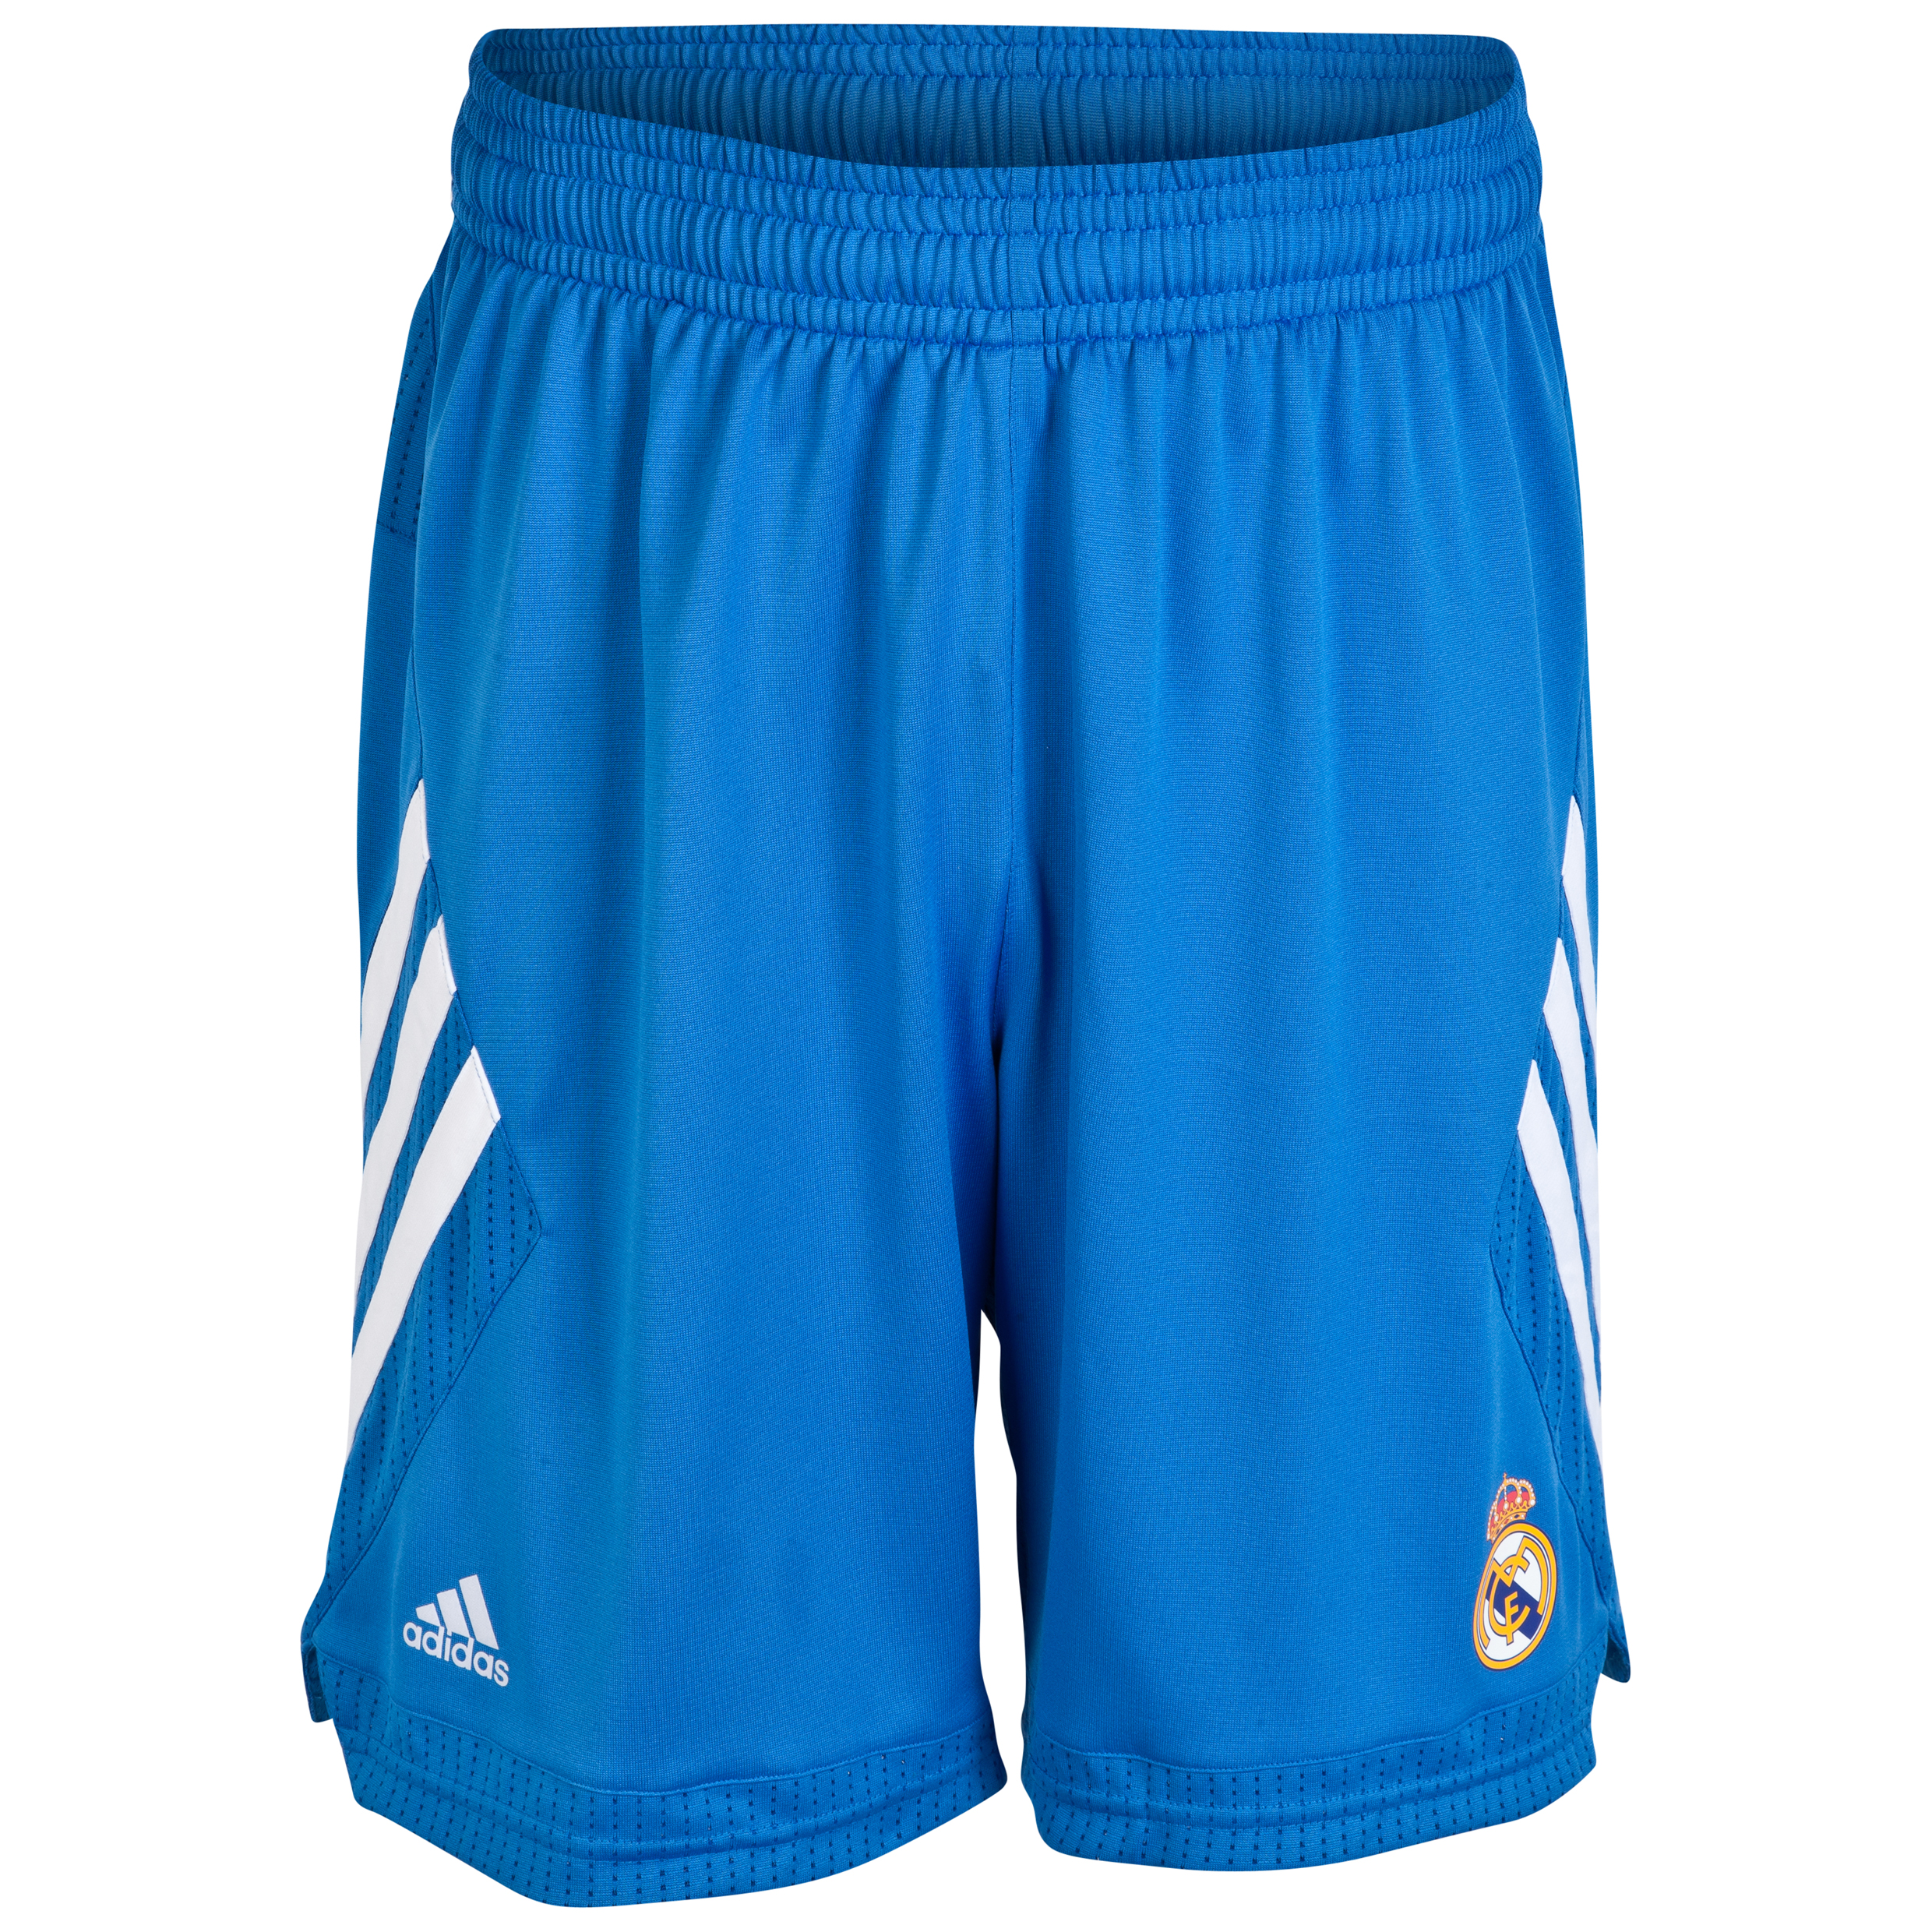 Real Madrid Away Basketball Shorts 2013/14 Blue